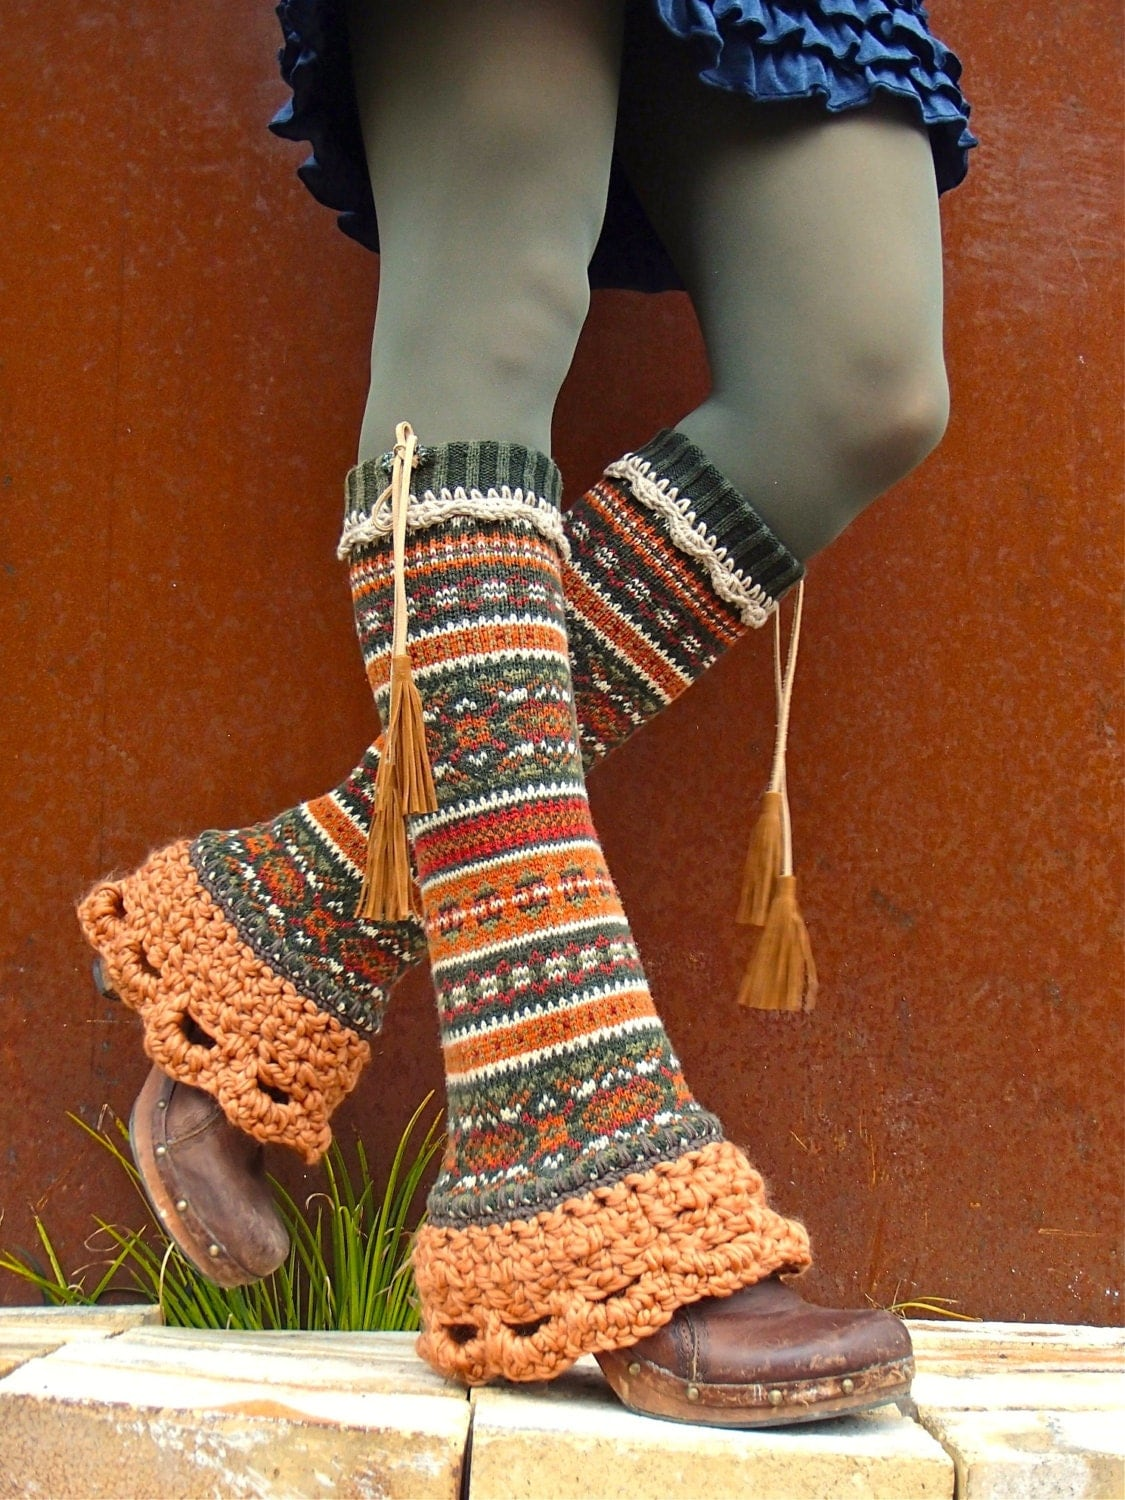 Leg Warmers; Leg Warmers. Like socks, minus the feet, leg warmers are perfect for adding that extra bit of coziness! That makes them great a layer for dance, working out or just hanging out. Whether you're wearing them over bare legs, stockings or pants, a leg warmer offers .